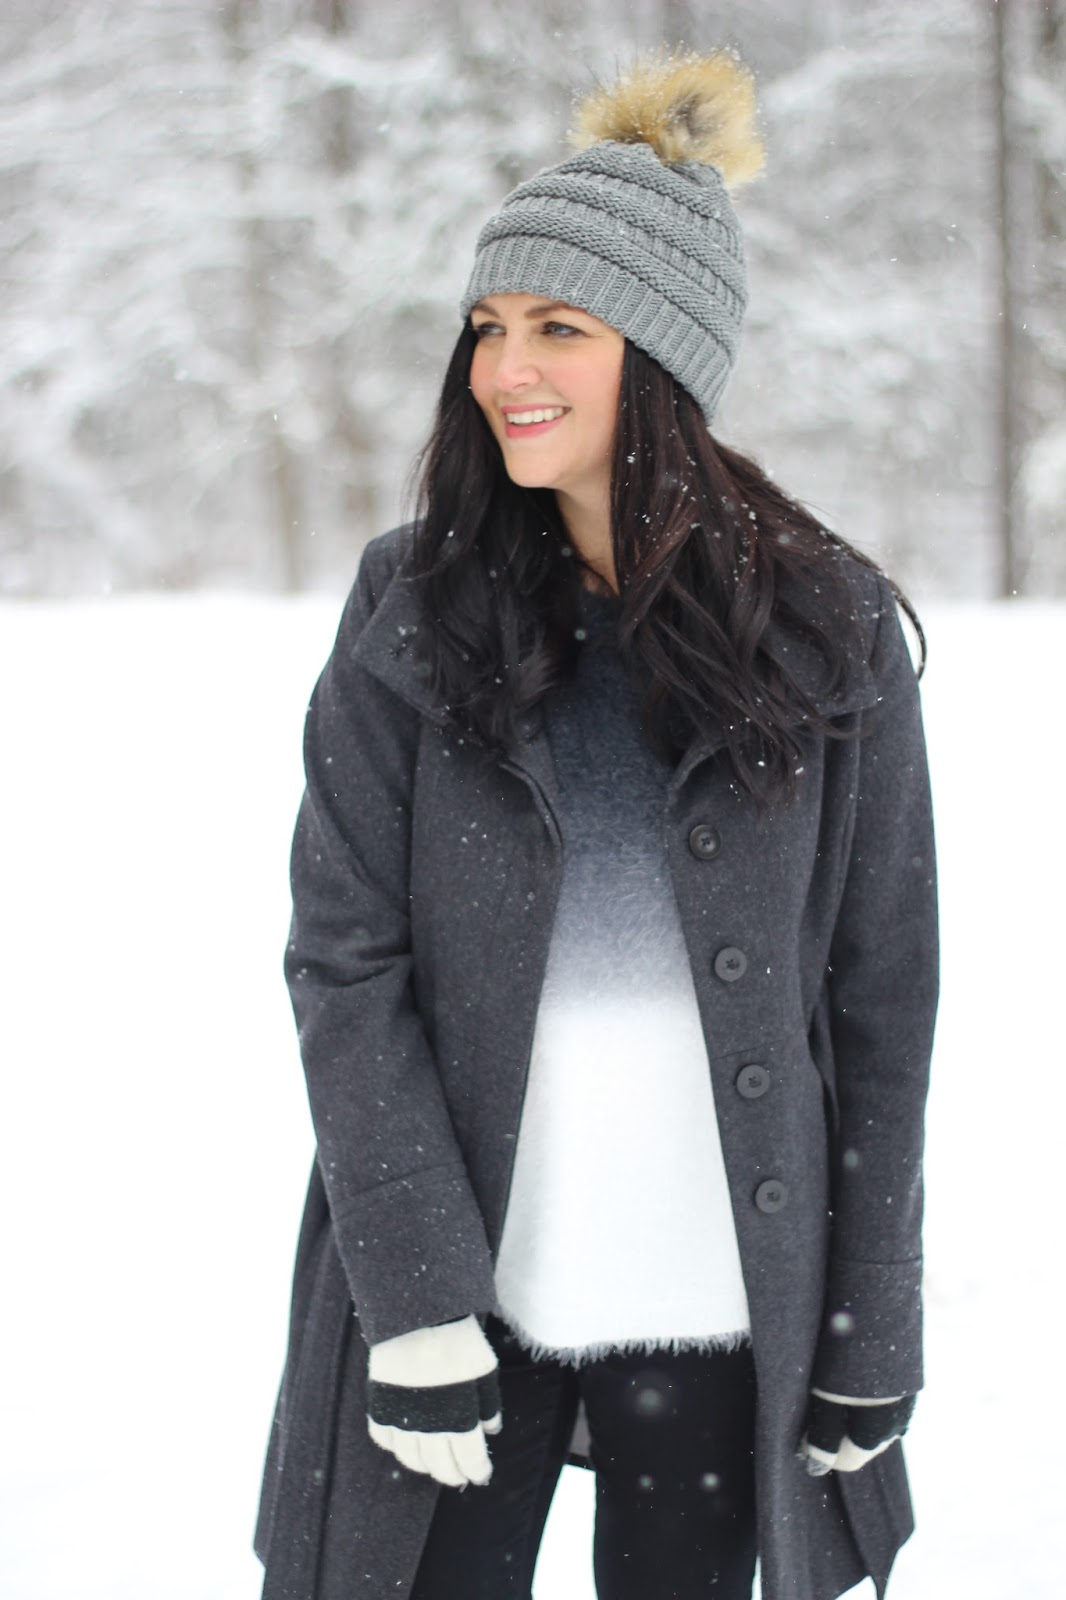 Cozy snow day outfit